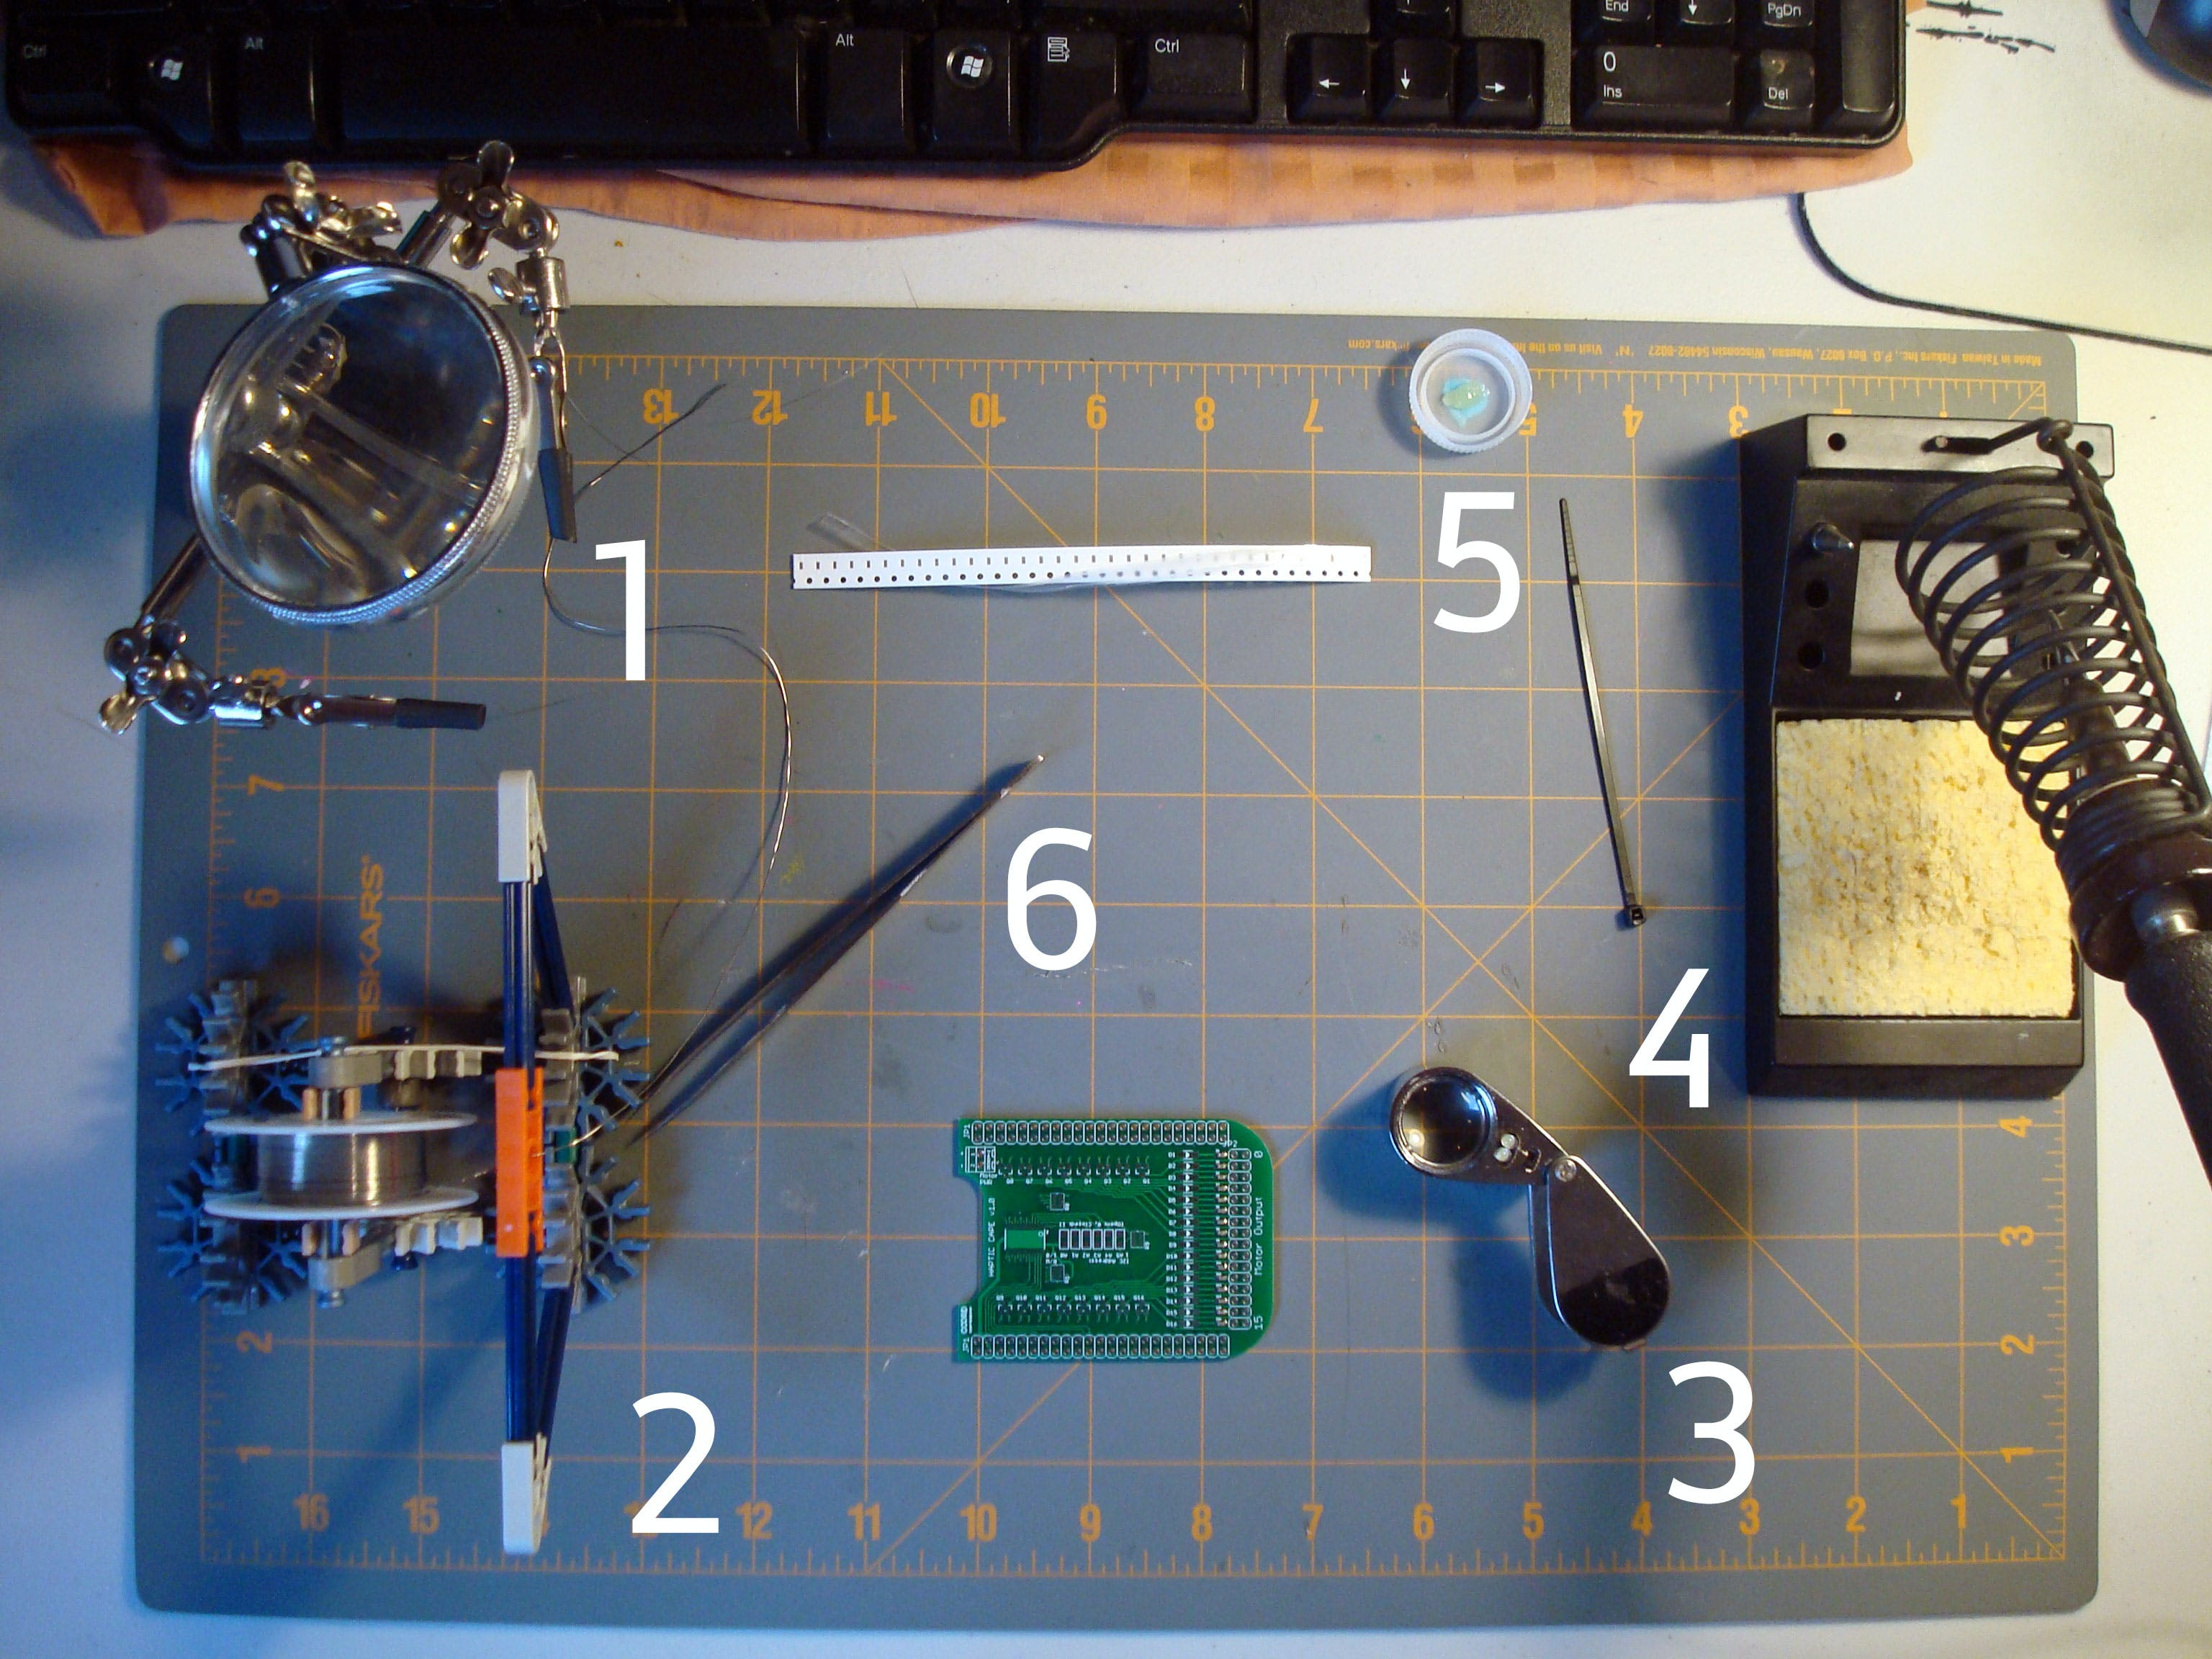 Going counter-clockwise from the upper left. 1: Third hand for holding parts in place. 2: Solder dispenser, made from K'Nex for geek-cred. 3: Jeweler's loupe for close inspection. 4: WES51 Solder Station. 5: A puddle of no-clean flux in a bottlecap with a little plastic stick to move it around. 6: Fine tipped tweezers.